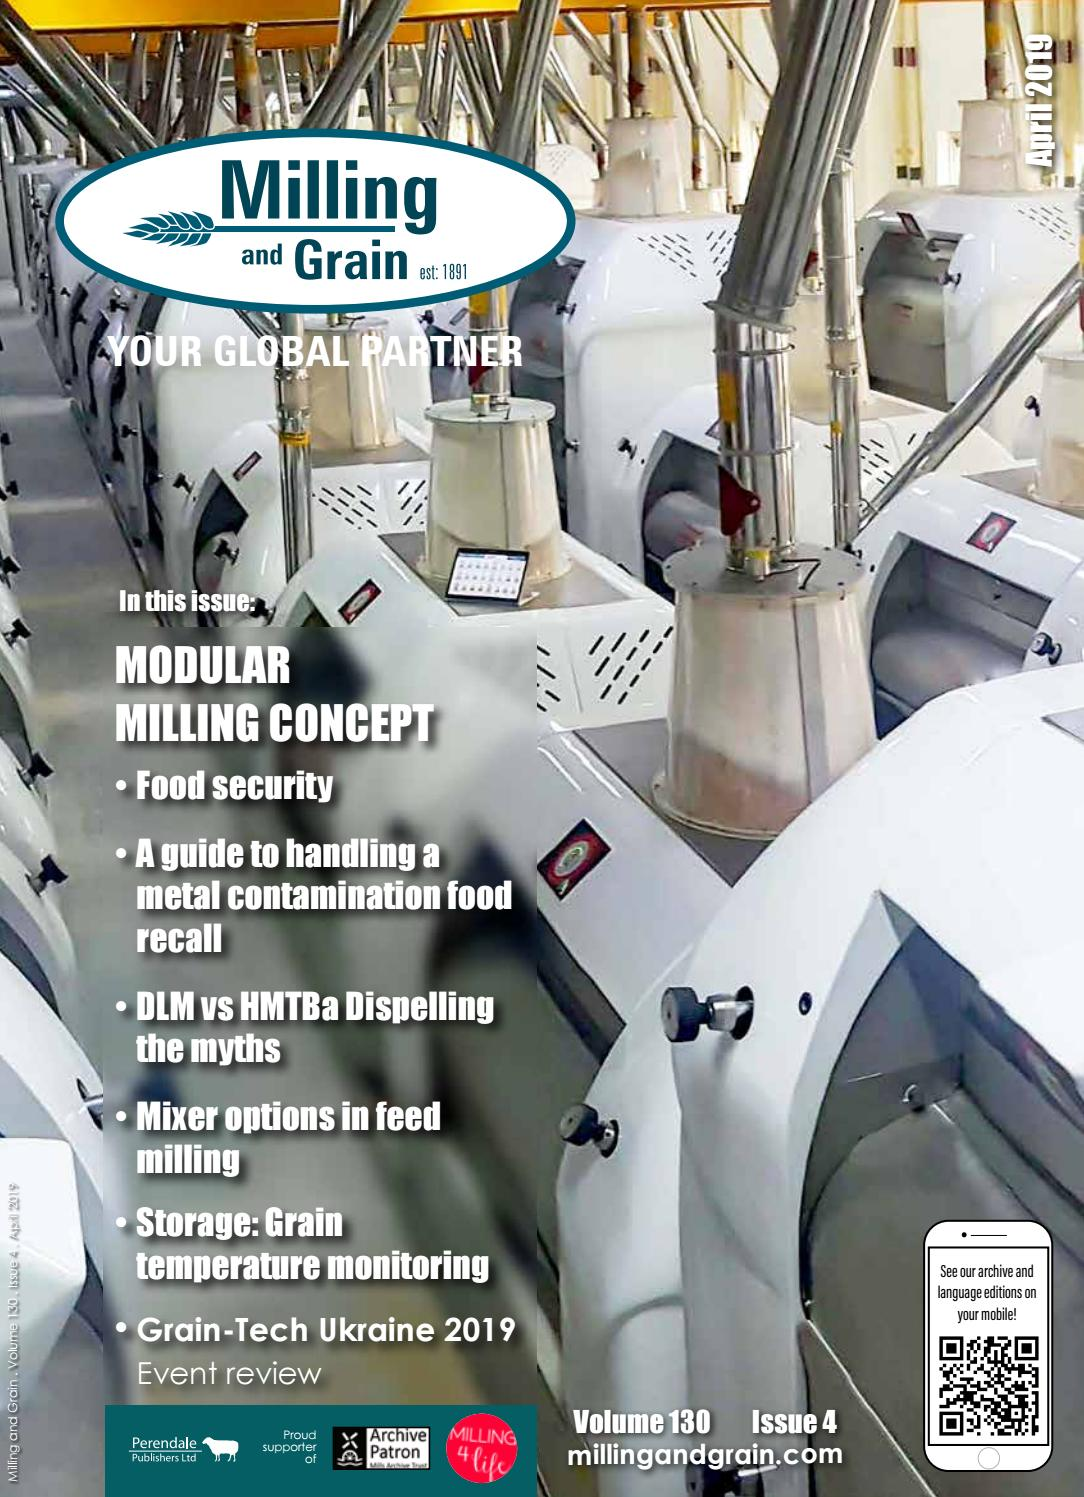 APR 2019 - Milling and Grain magazine by Perendale Publishers - issuu